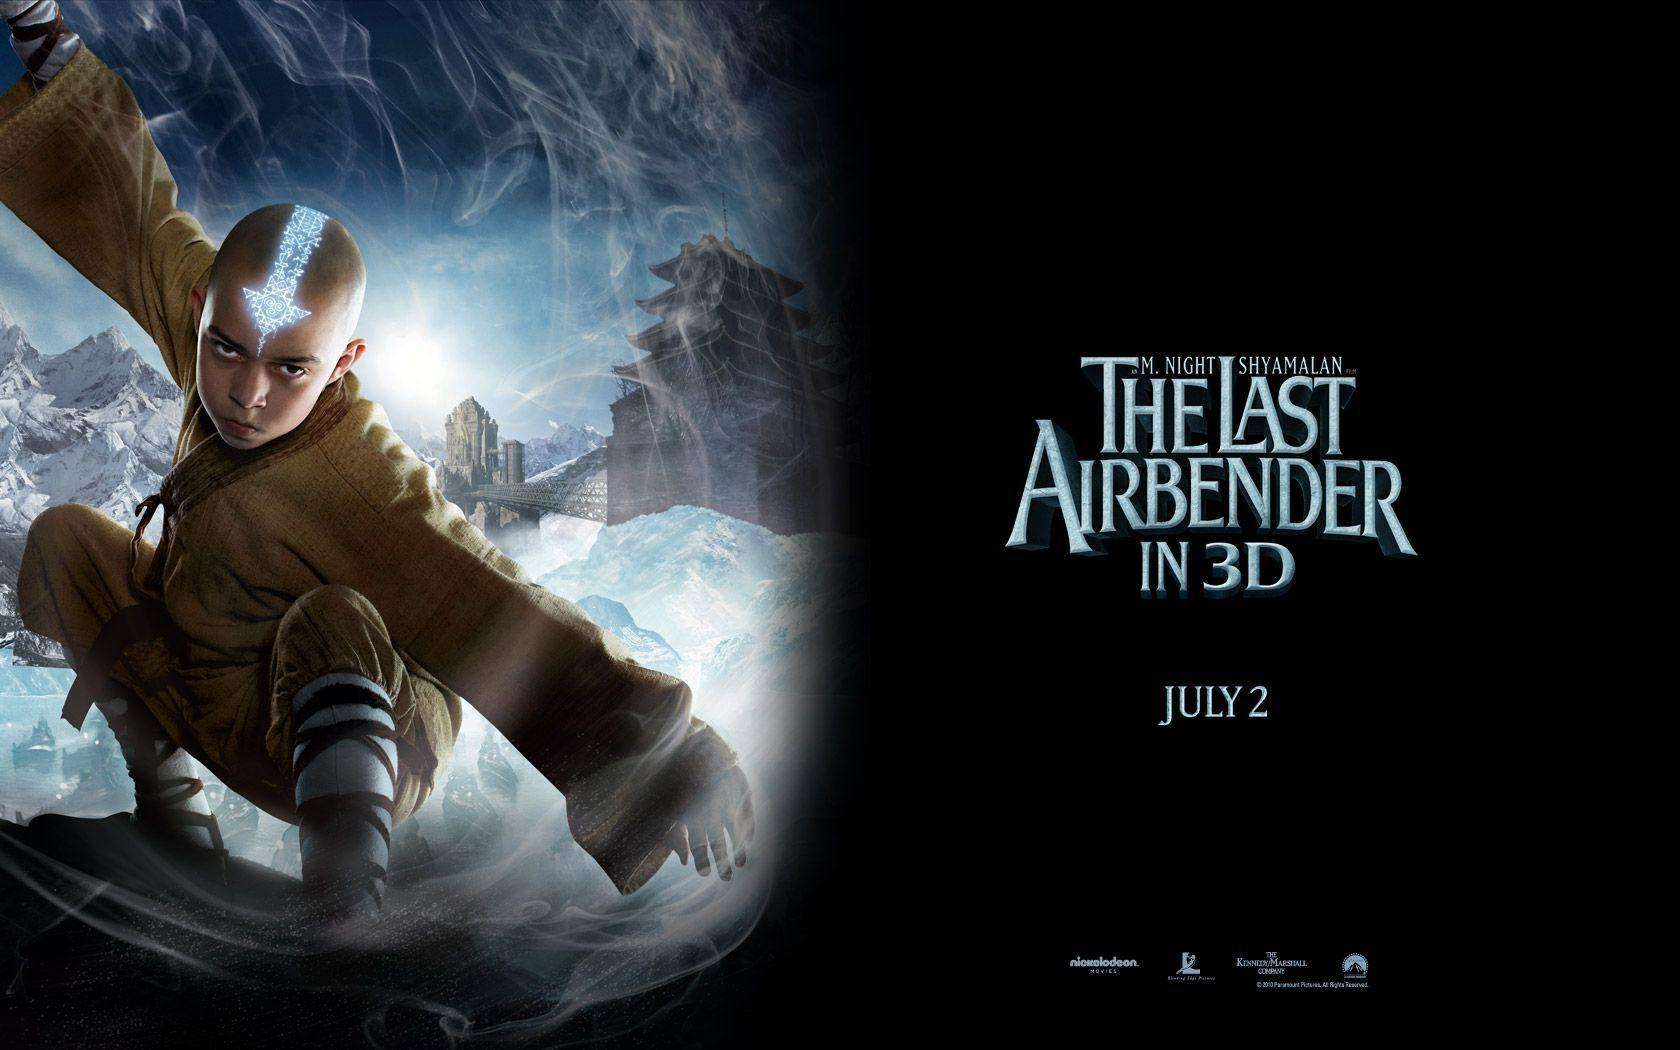 The Last Airbender Wallpapers - Wallpaper Cave